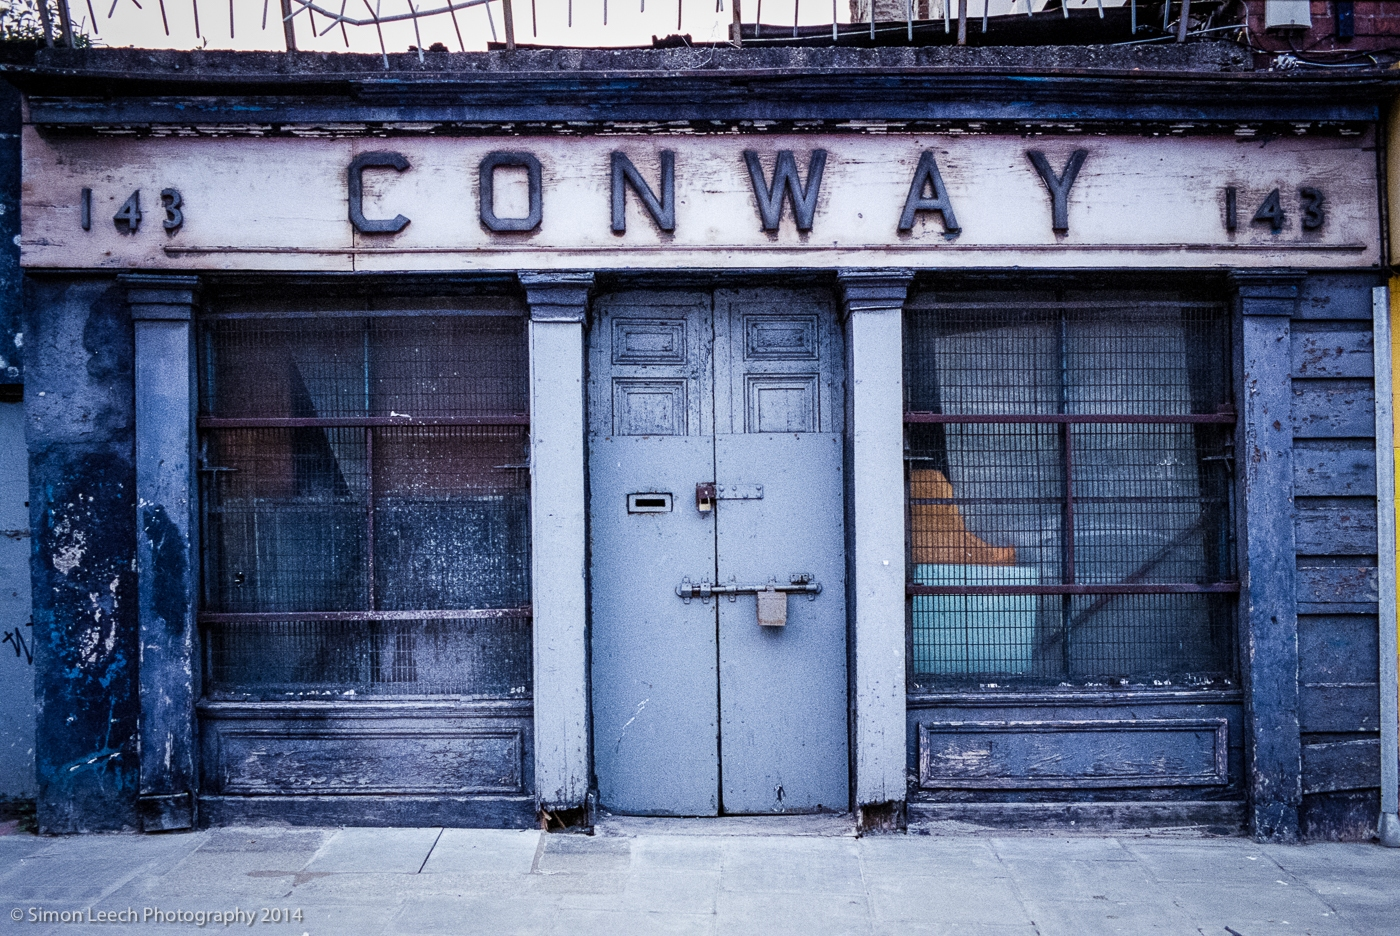 Conway 143